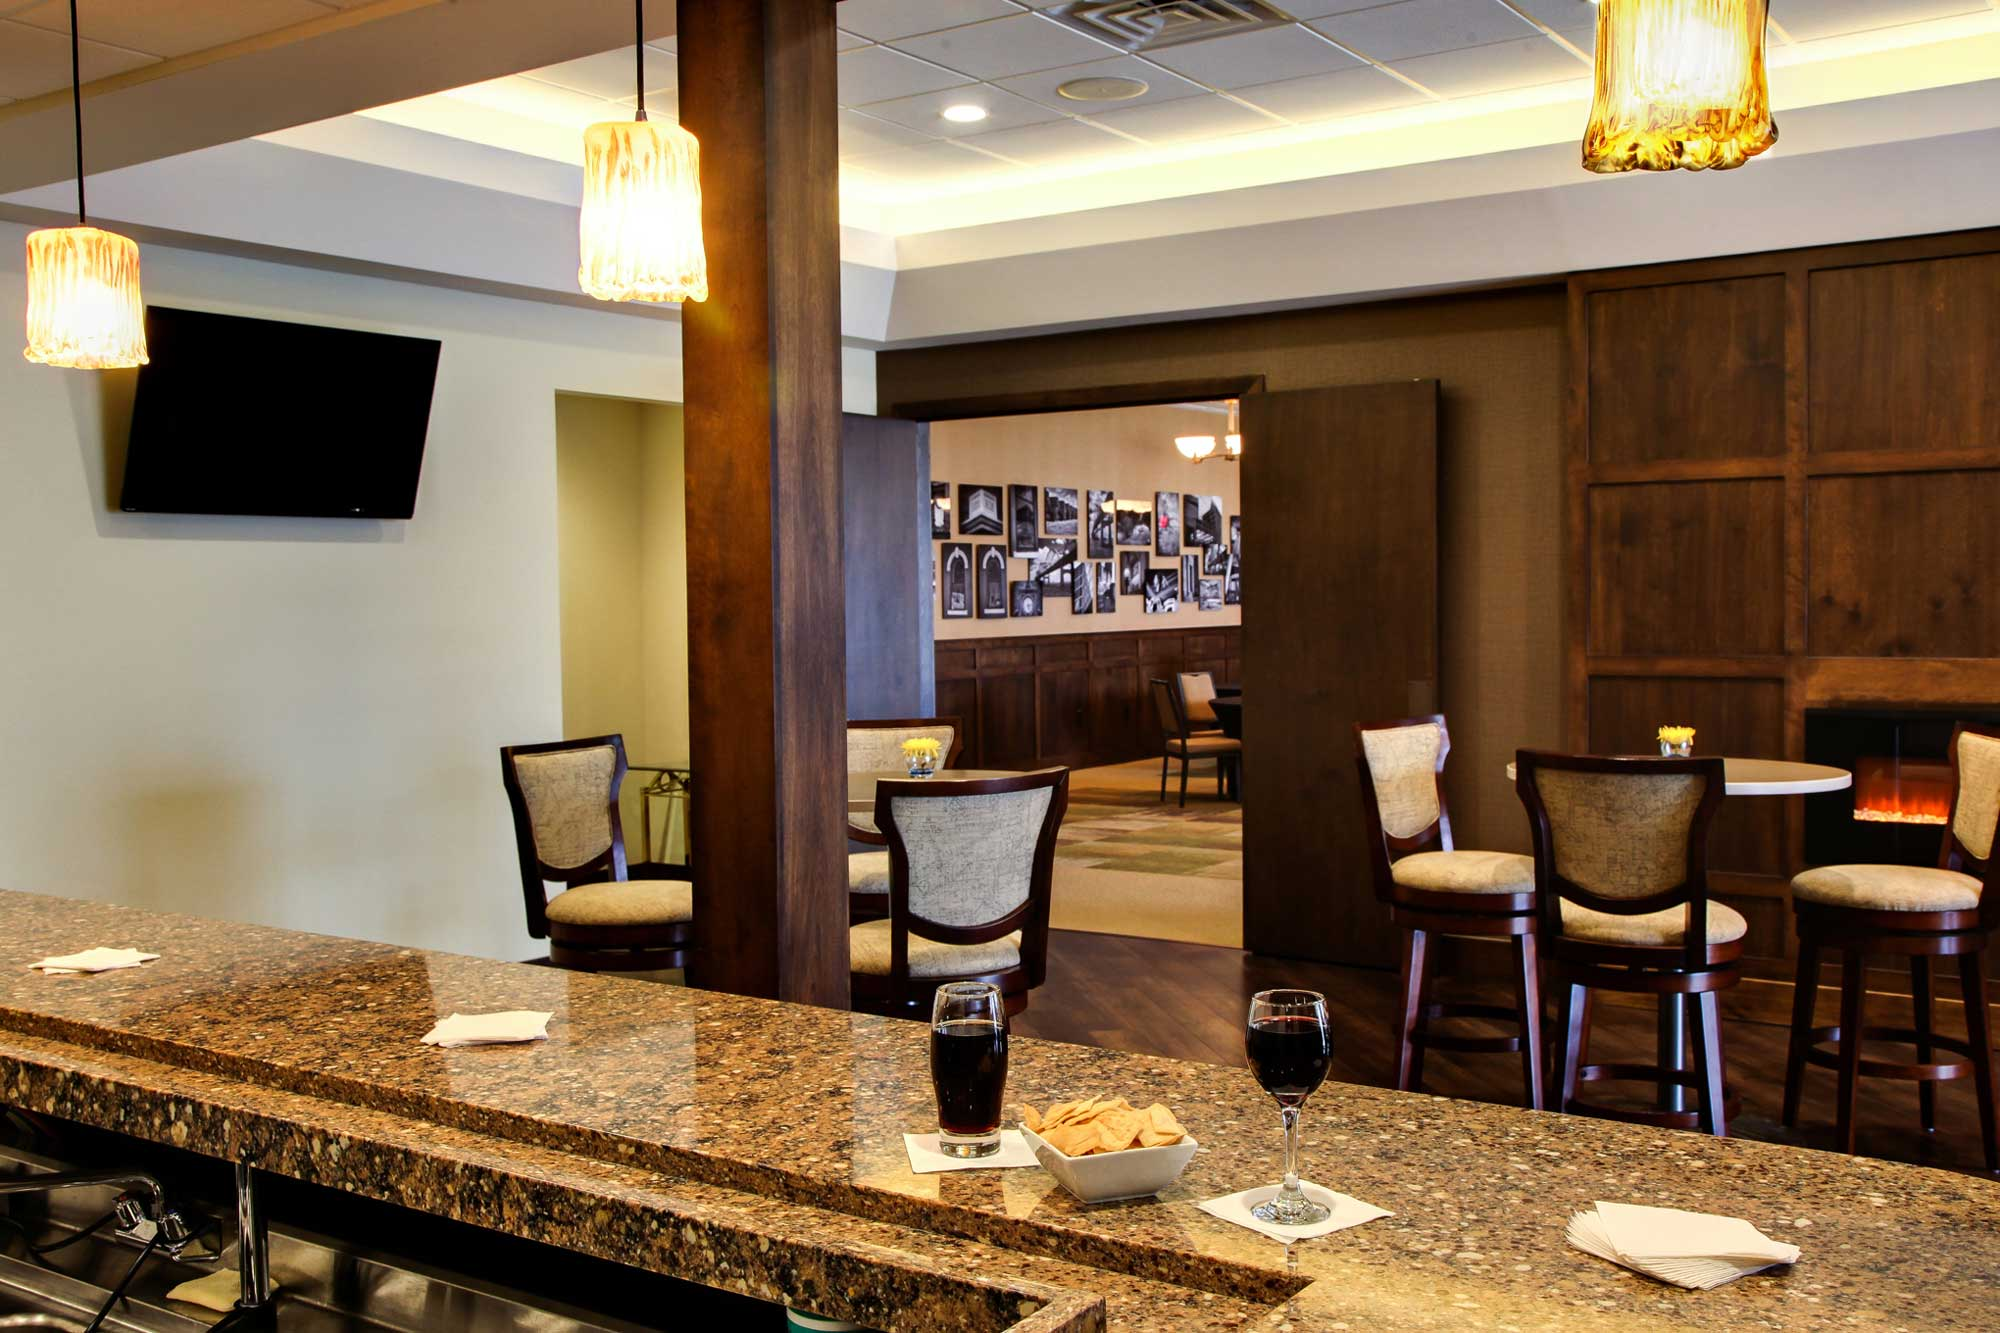 Feature of Trimble Point funeral home showing bar area by the main dining hall